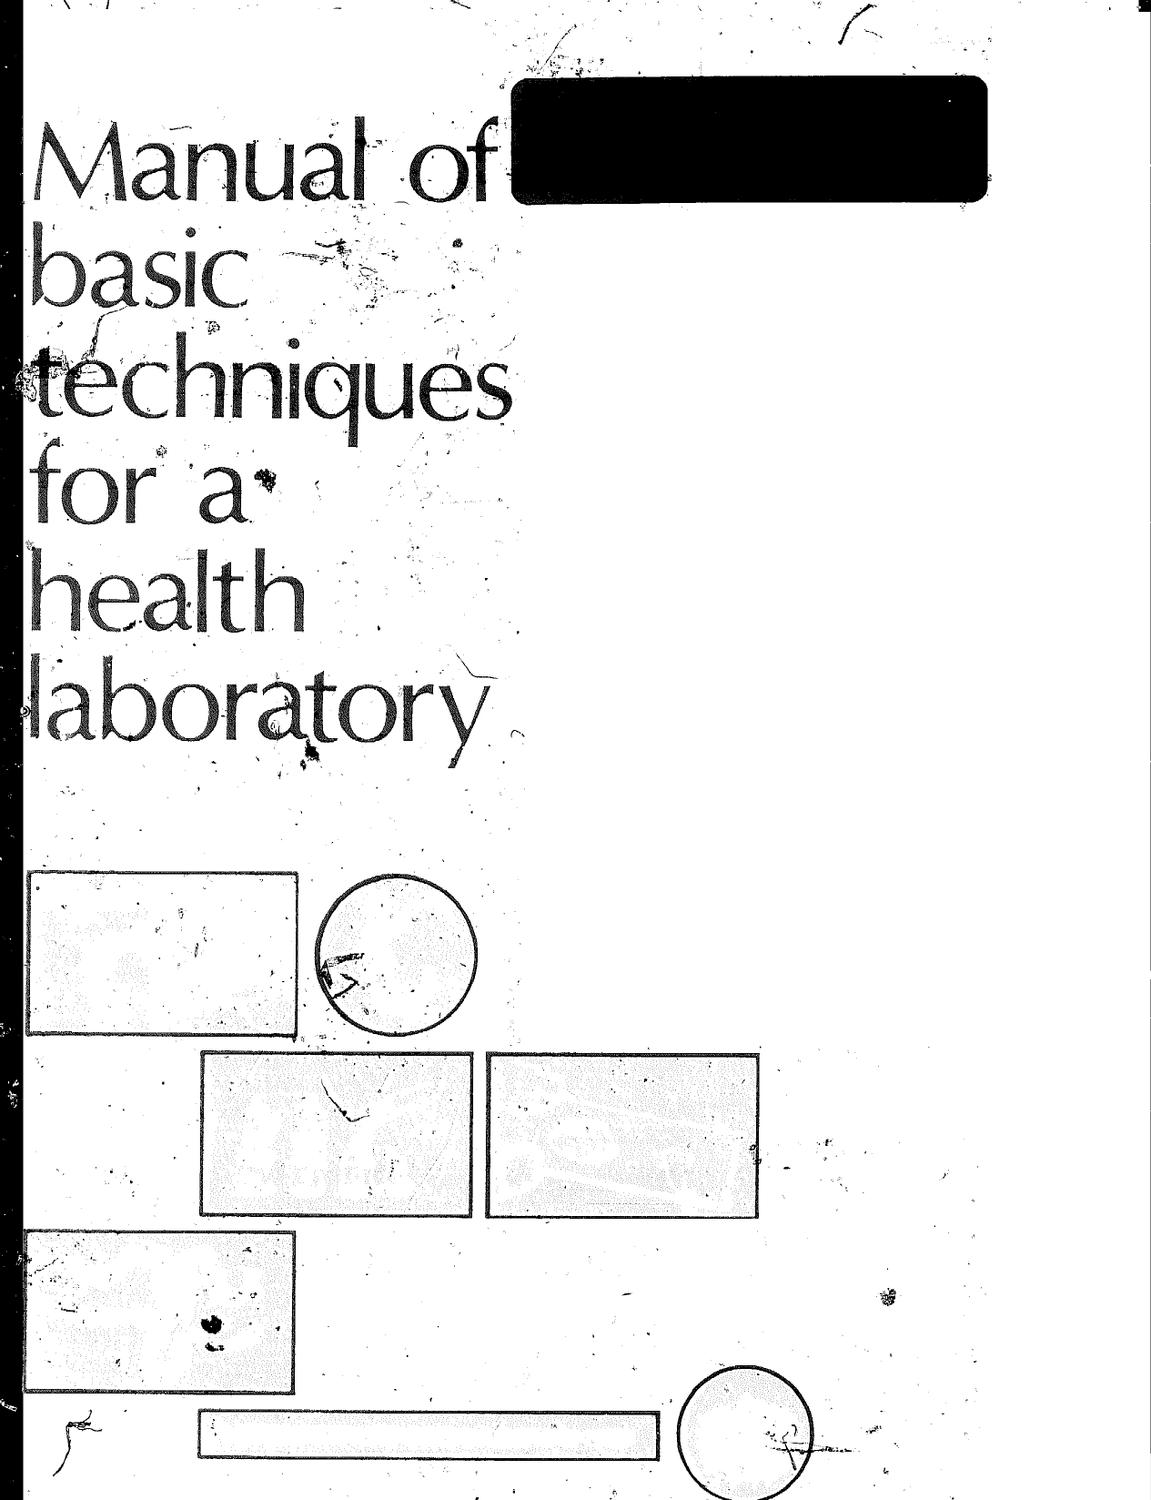 Manual of Basic Techniques for a Health Laboratory by Luis